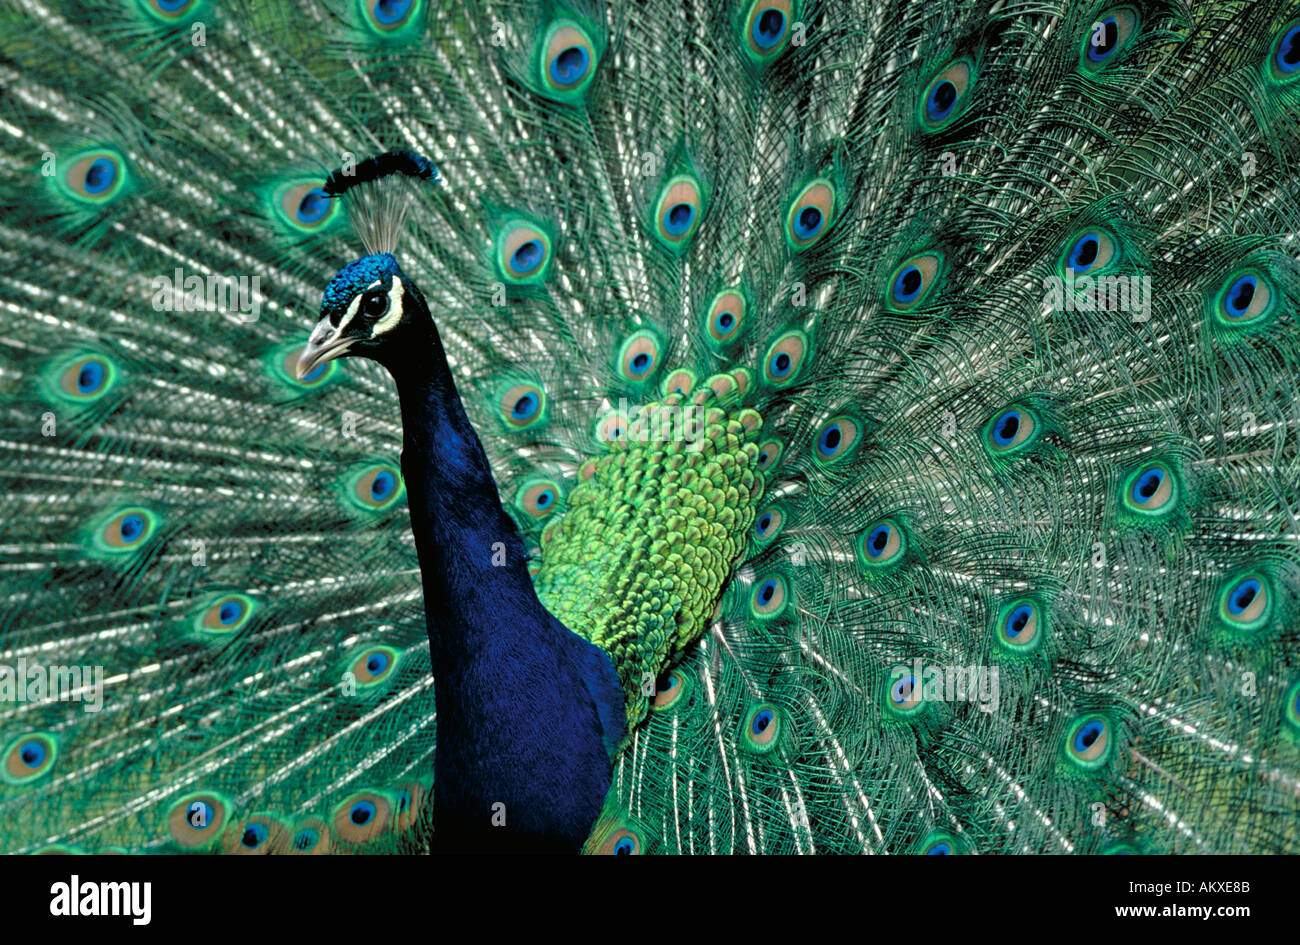 Colorful peacock tail